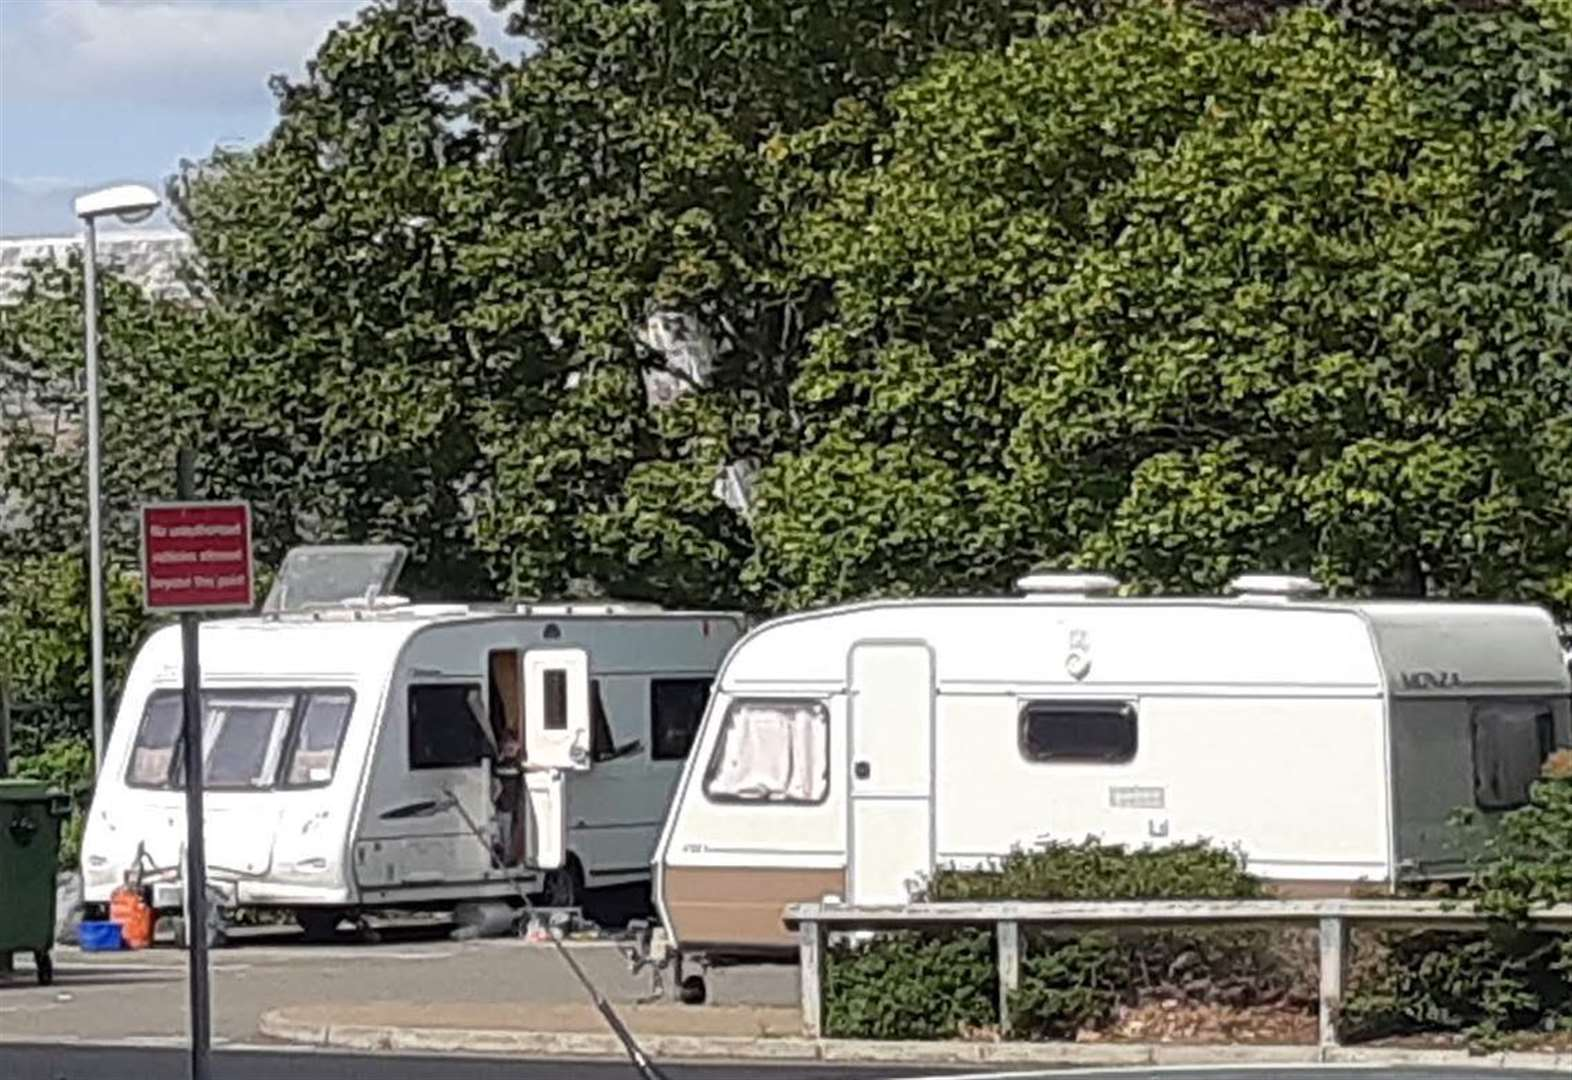 Travellers set up camp at Newmarket Leisure Centre for second time within a month